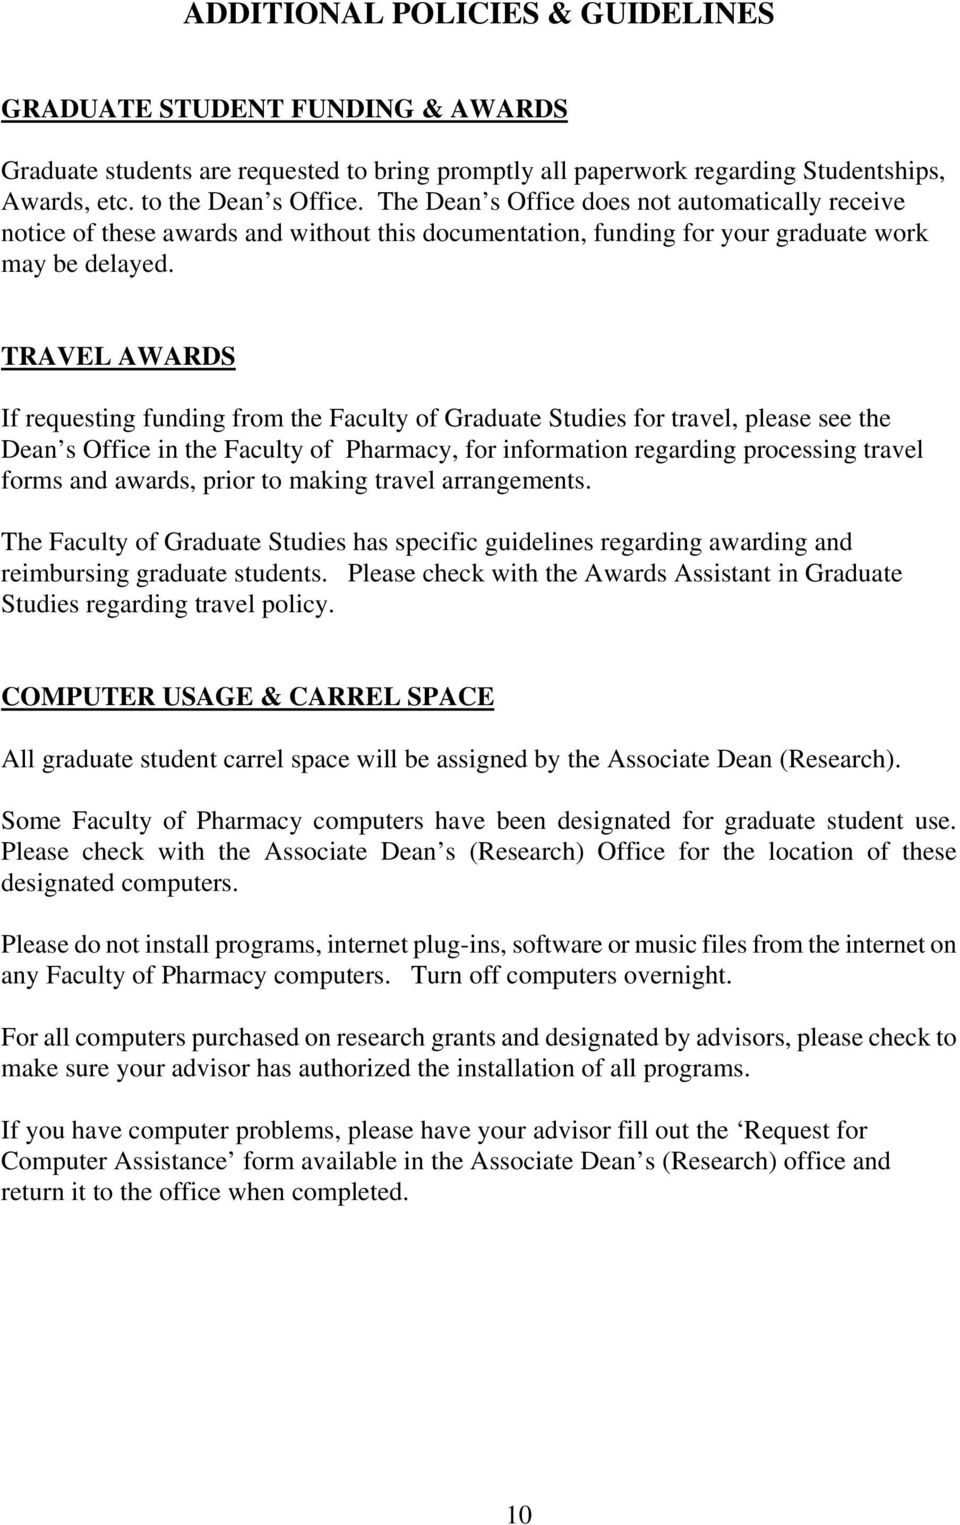 TRAVEL AWARDS If requesting funding from the Faculty of Graduate Studies for travel, please see the Dean s Office in the Faculty of Pharmacy, for information regarding processing travel forms and